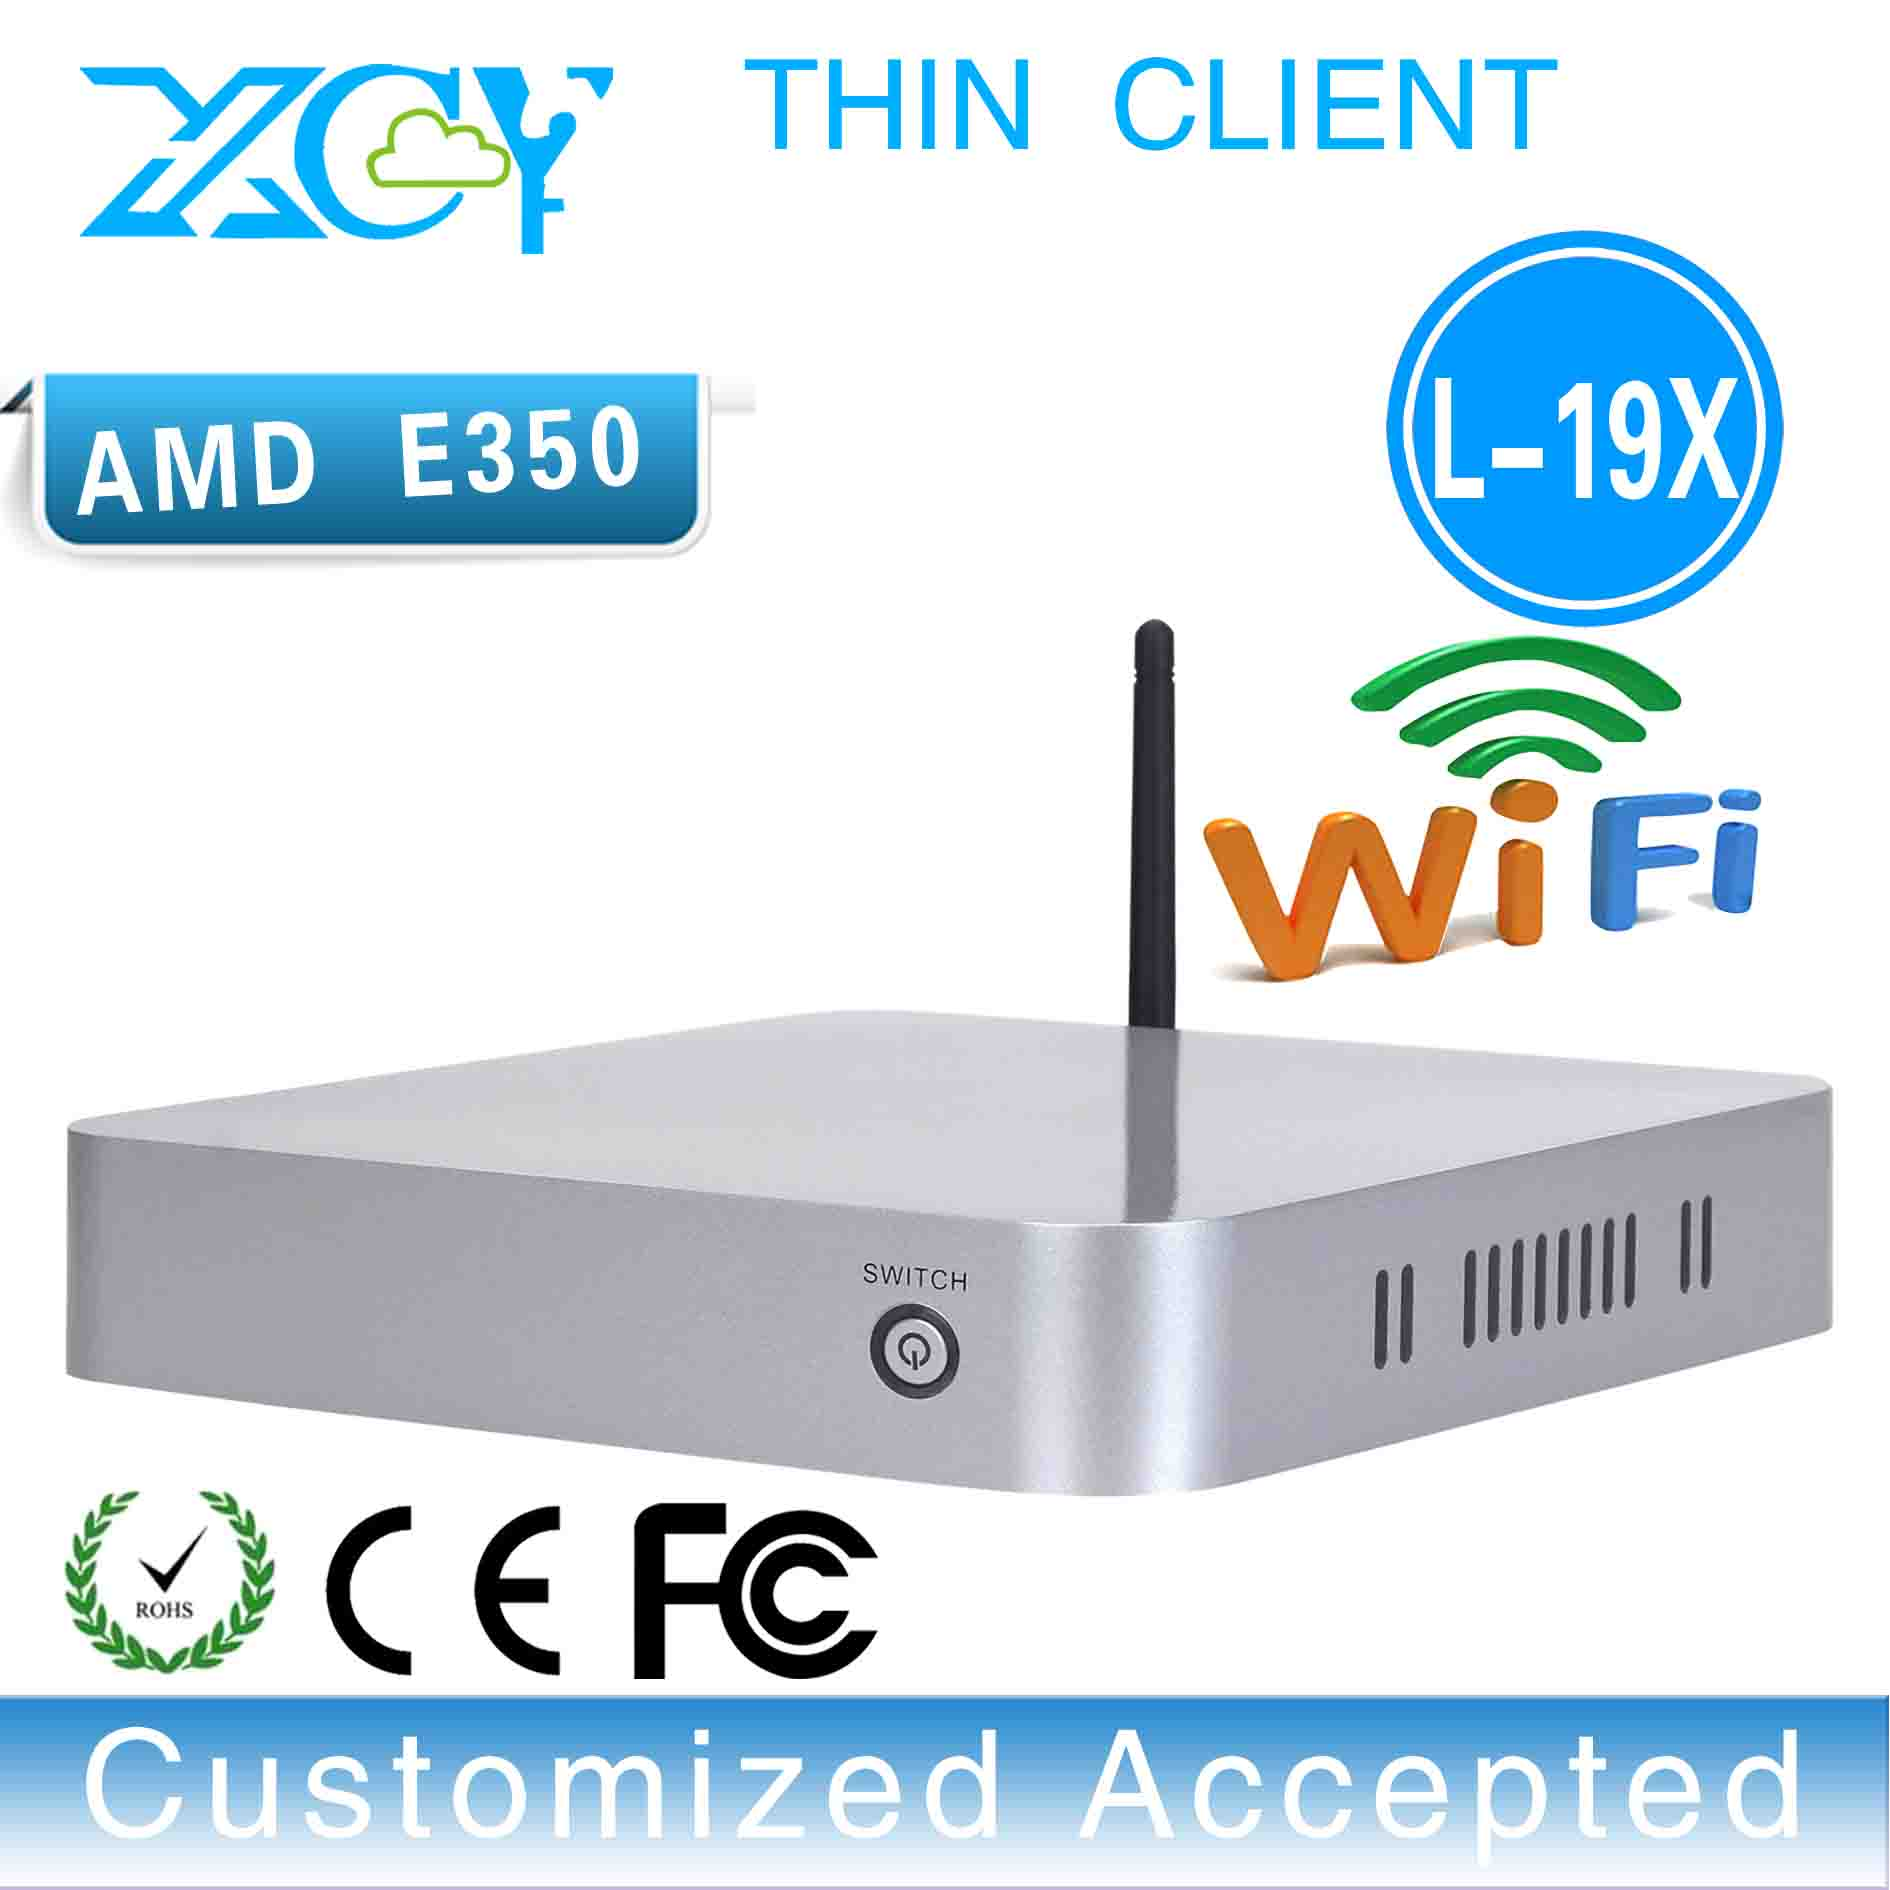 XCY L-19X AMD E350 Desktop Machine Support Wireless Keyboard, Mouse And Touch Screen Thin Client(China (Mainland))